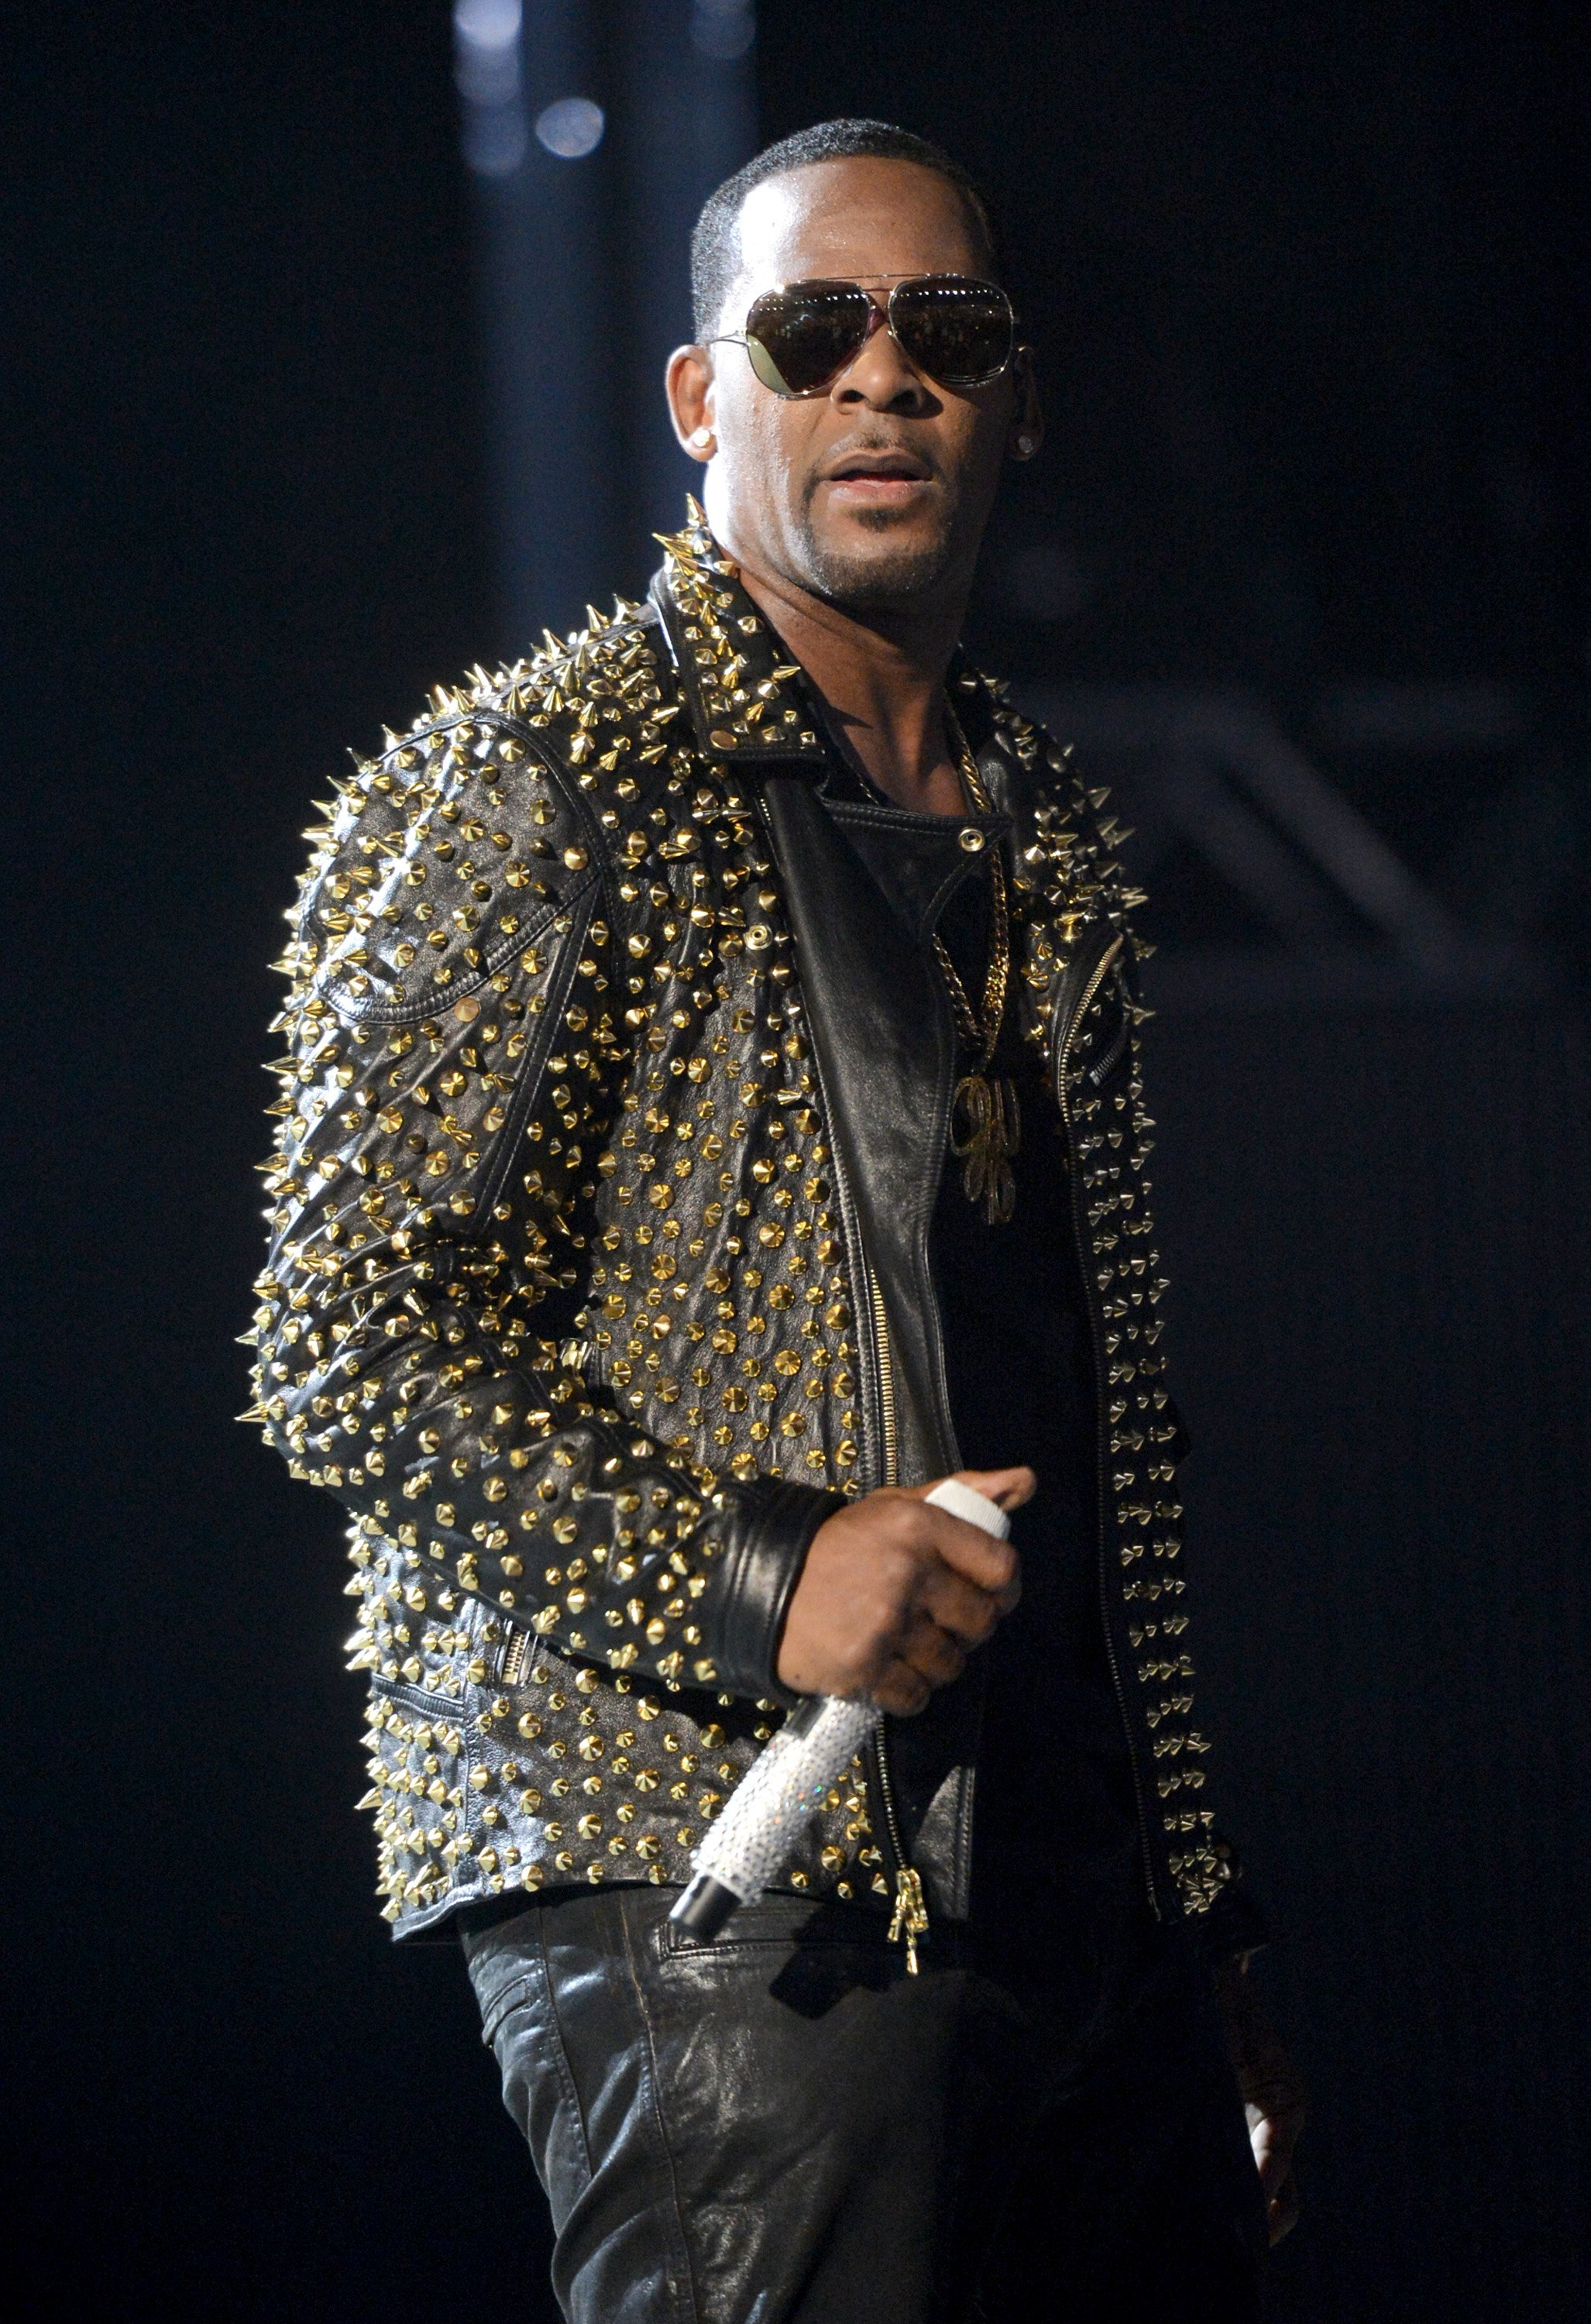 R. Kelly performs onstage during the BET Awards on June 30, 2013 in Los Angeles, California | Photo: Getty Images